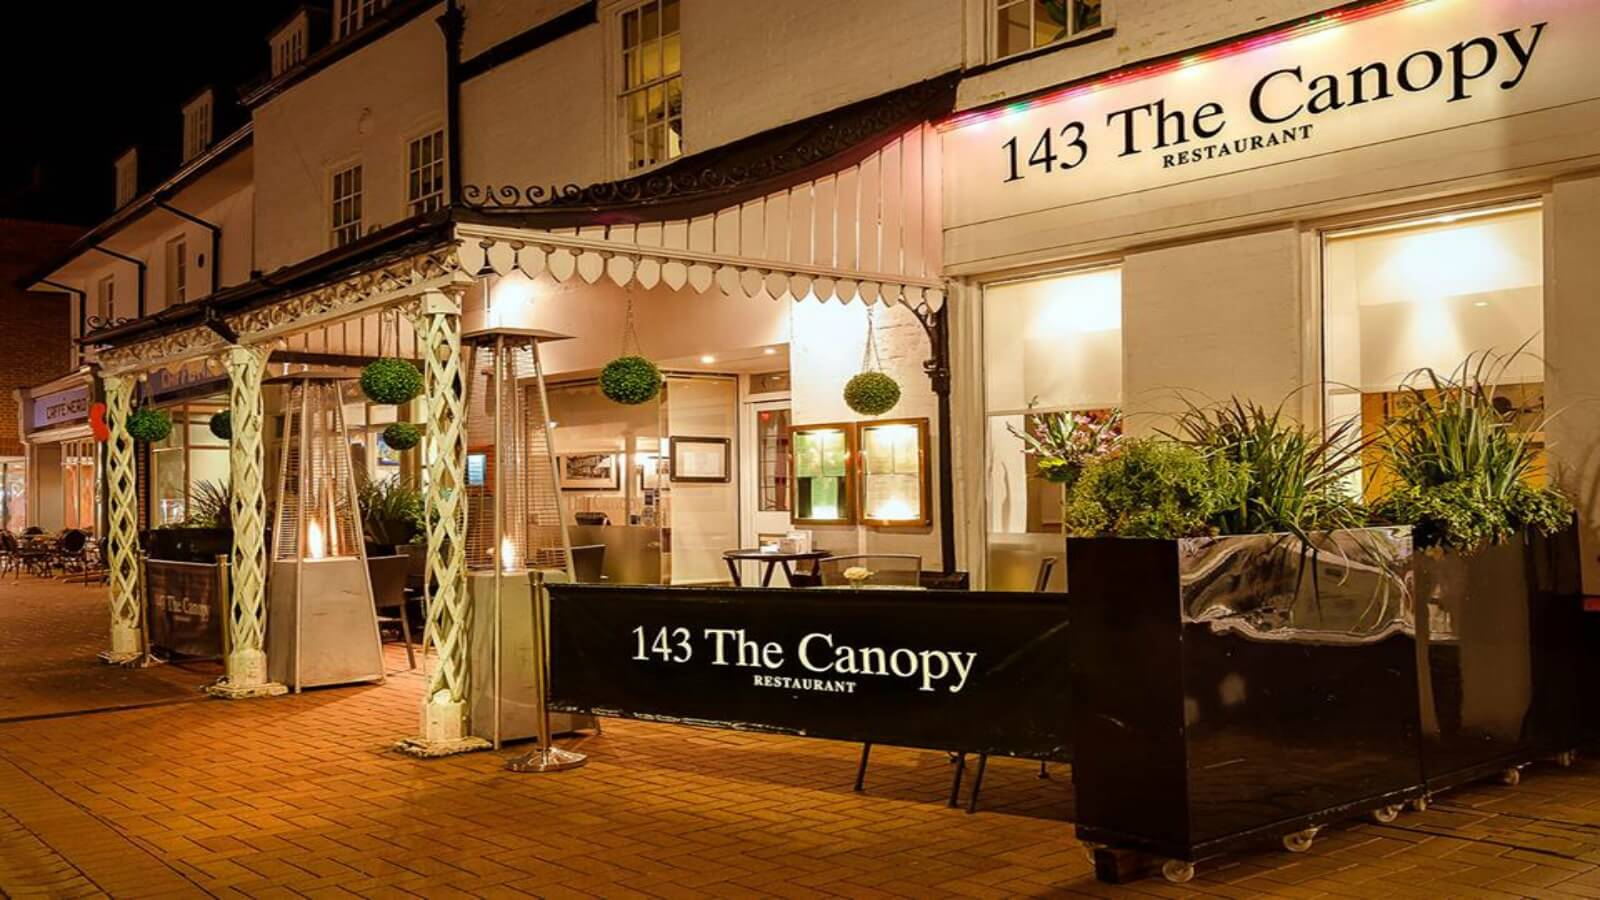 143 The Canopy Restaurant